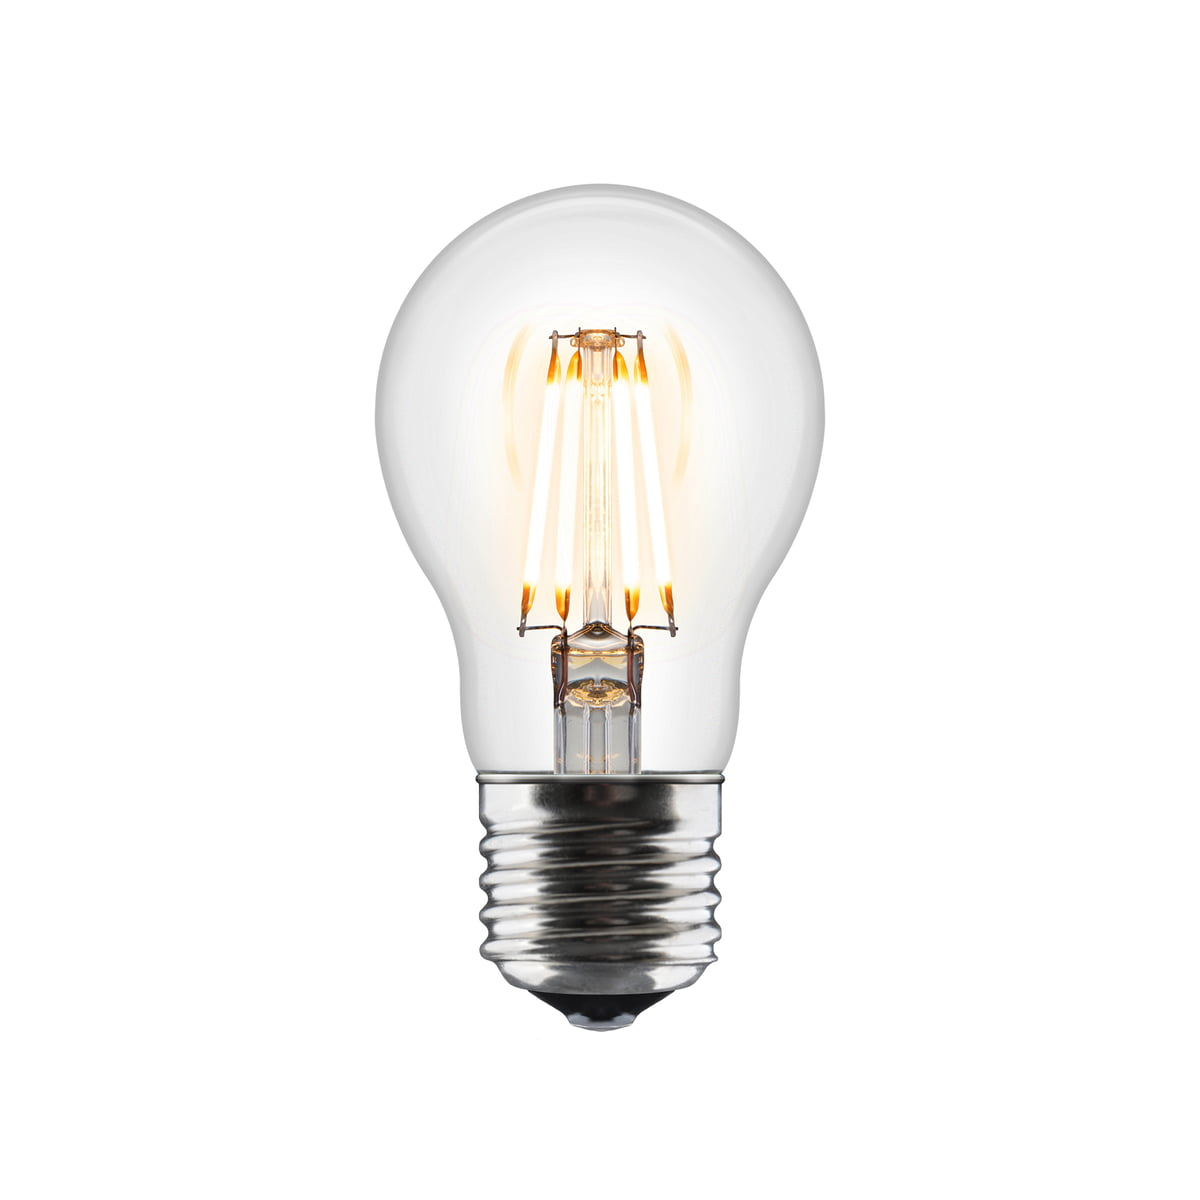 LED Idea Lightbulb by Vita